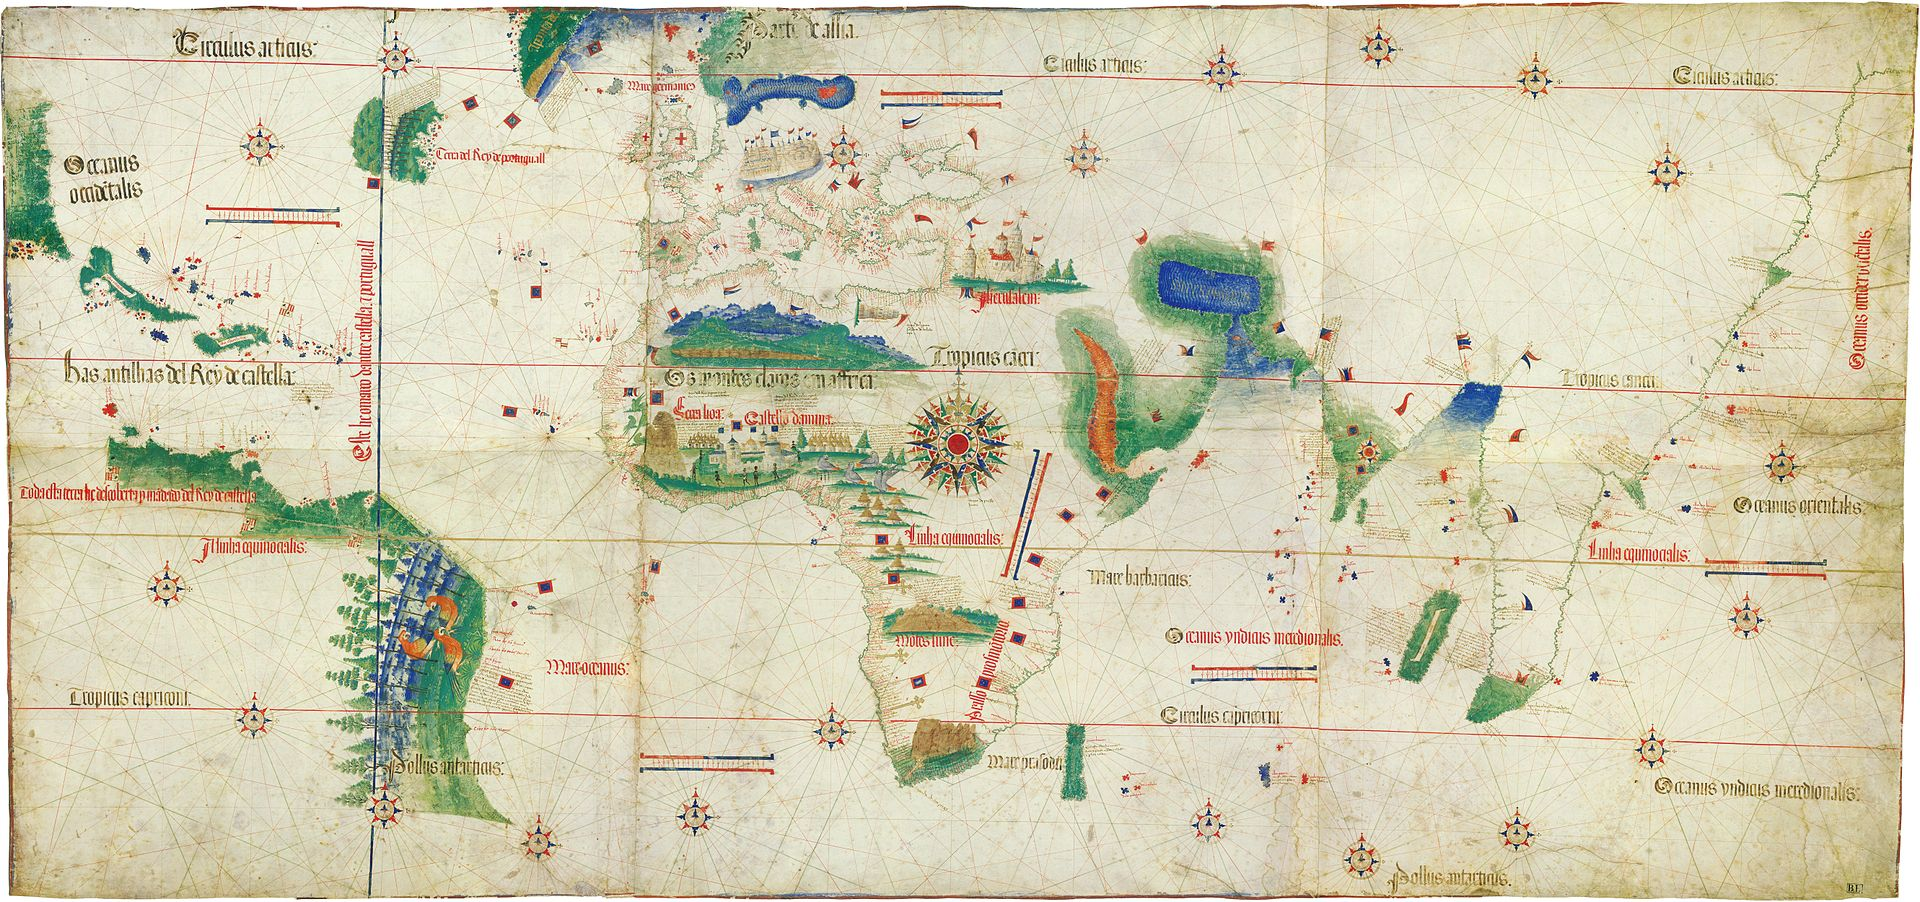 Age of Discovery begins, a period of European global exploration